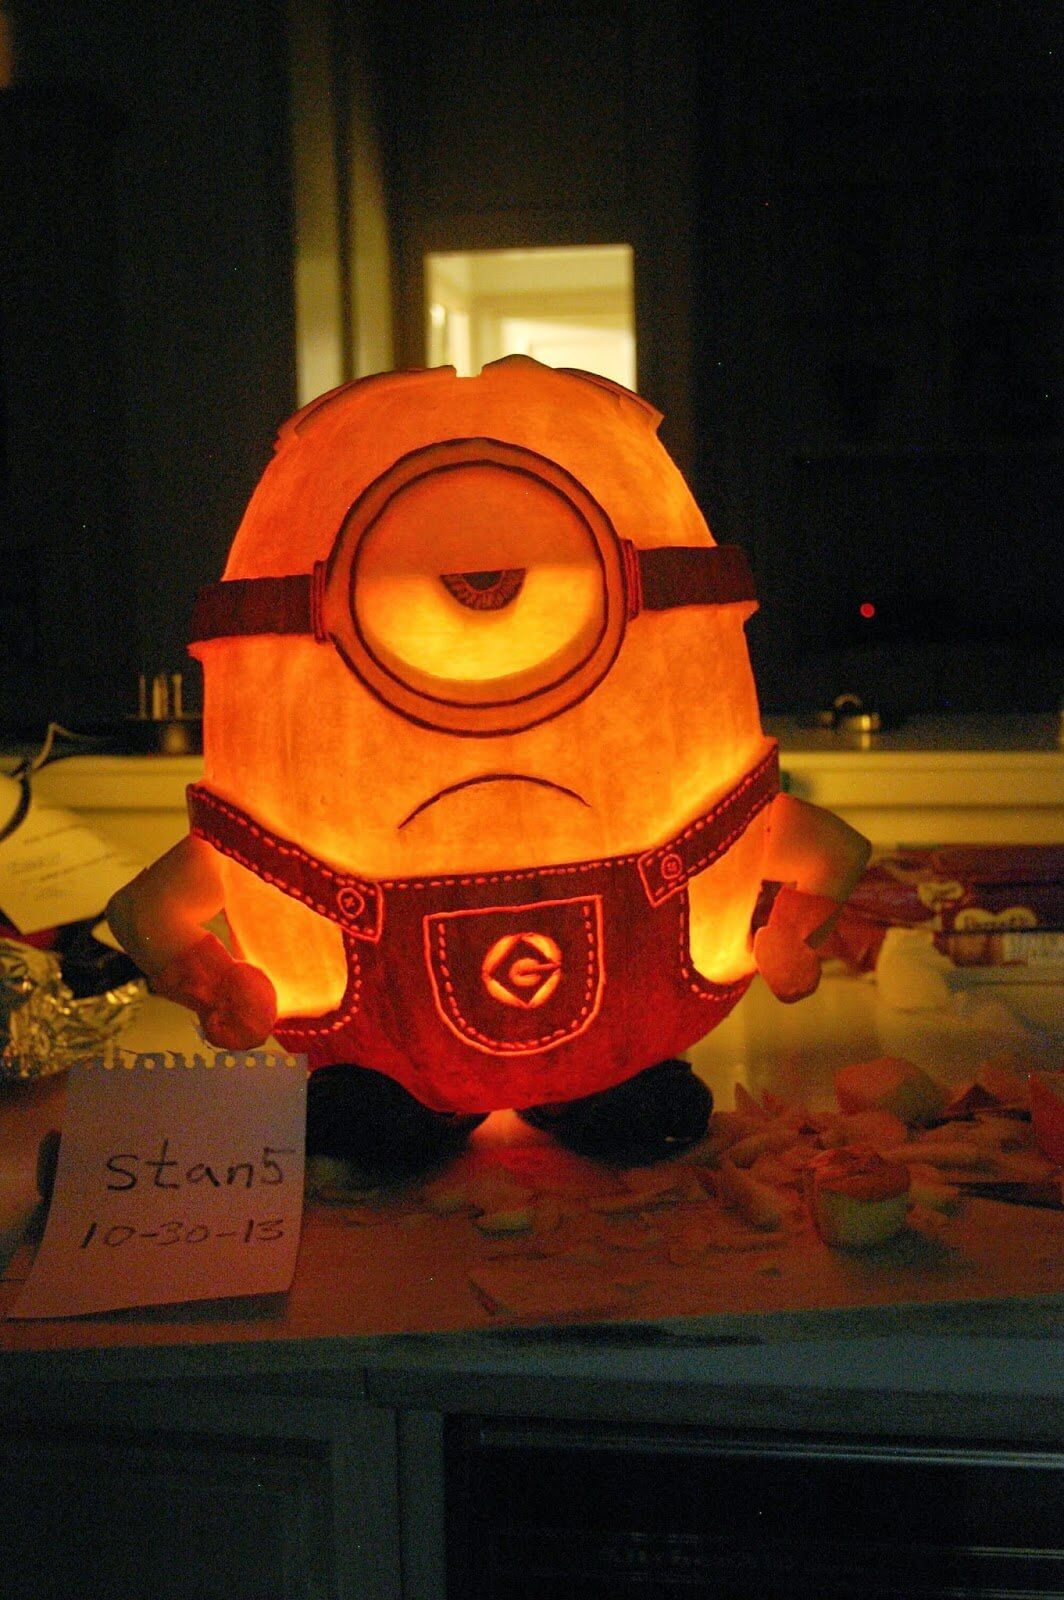 30 pumpkin carving ideas you will absolutely love - crafts on fire